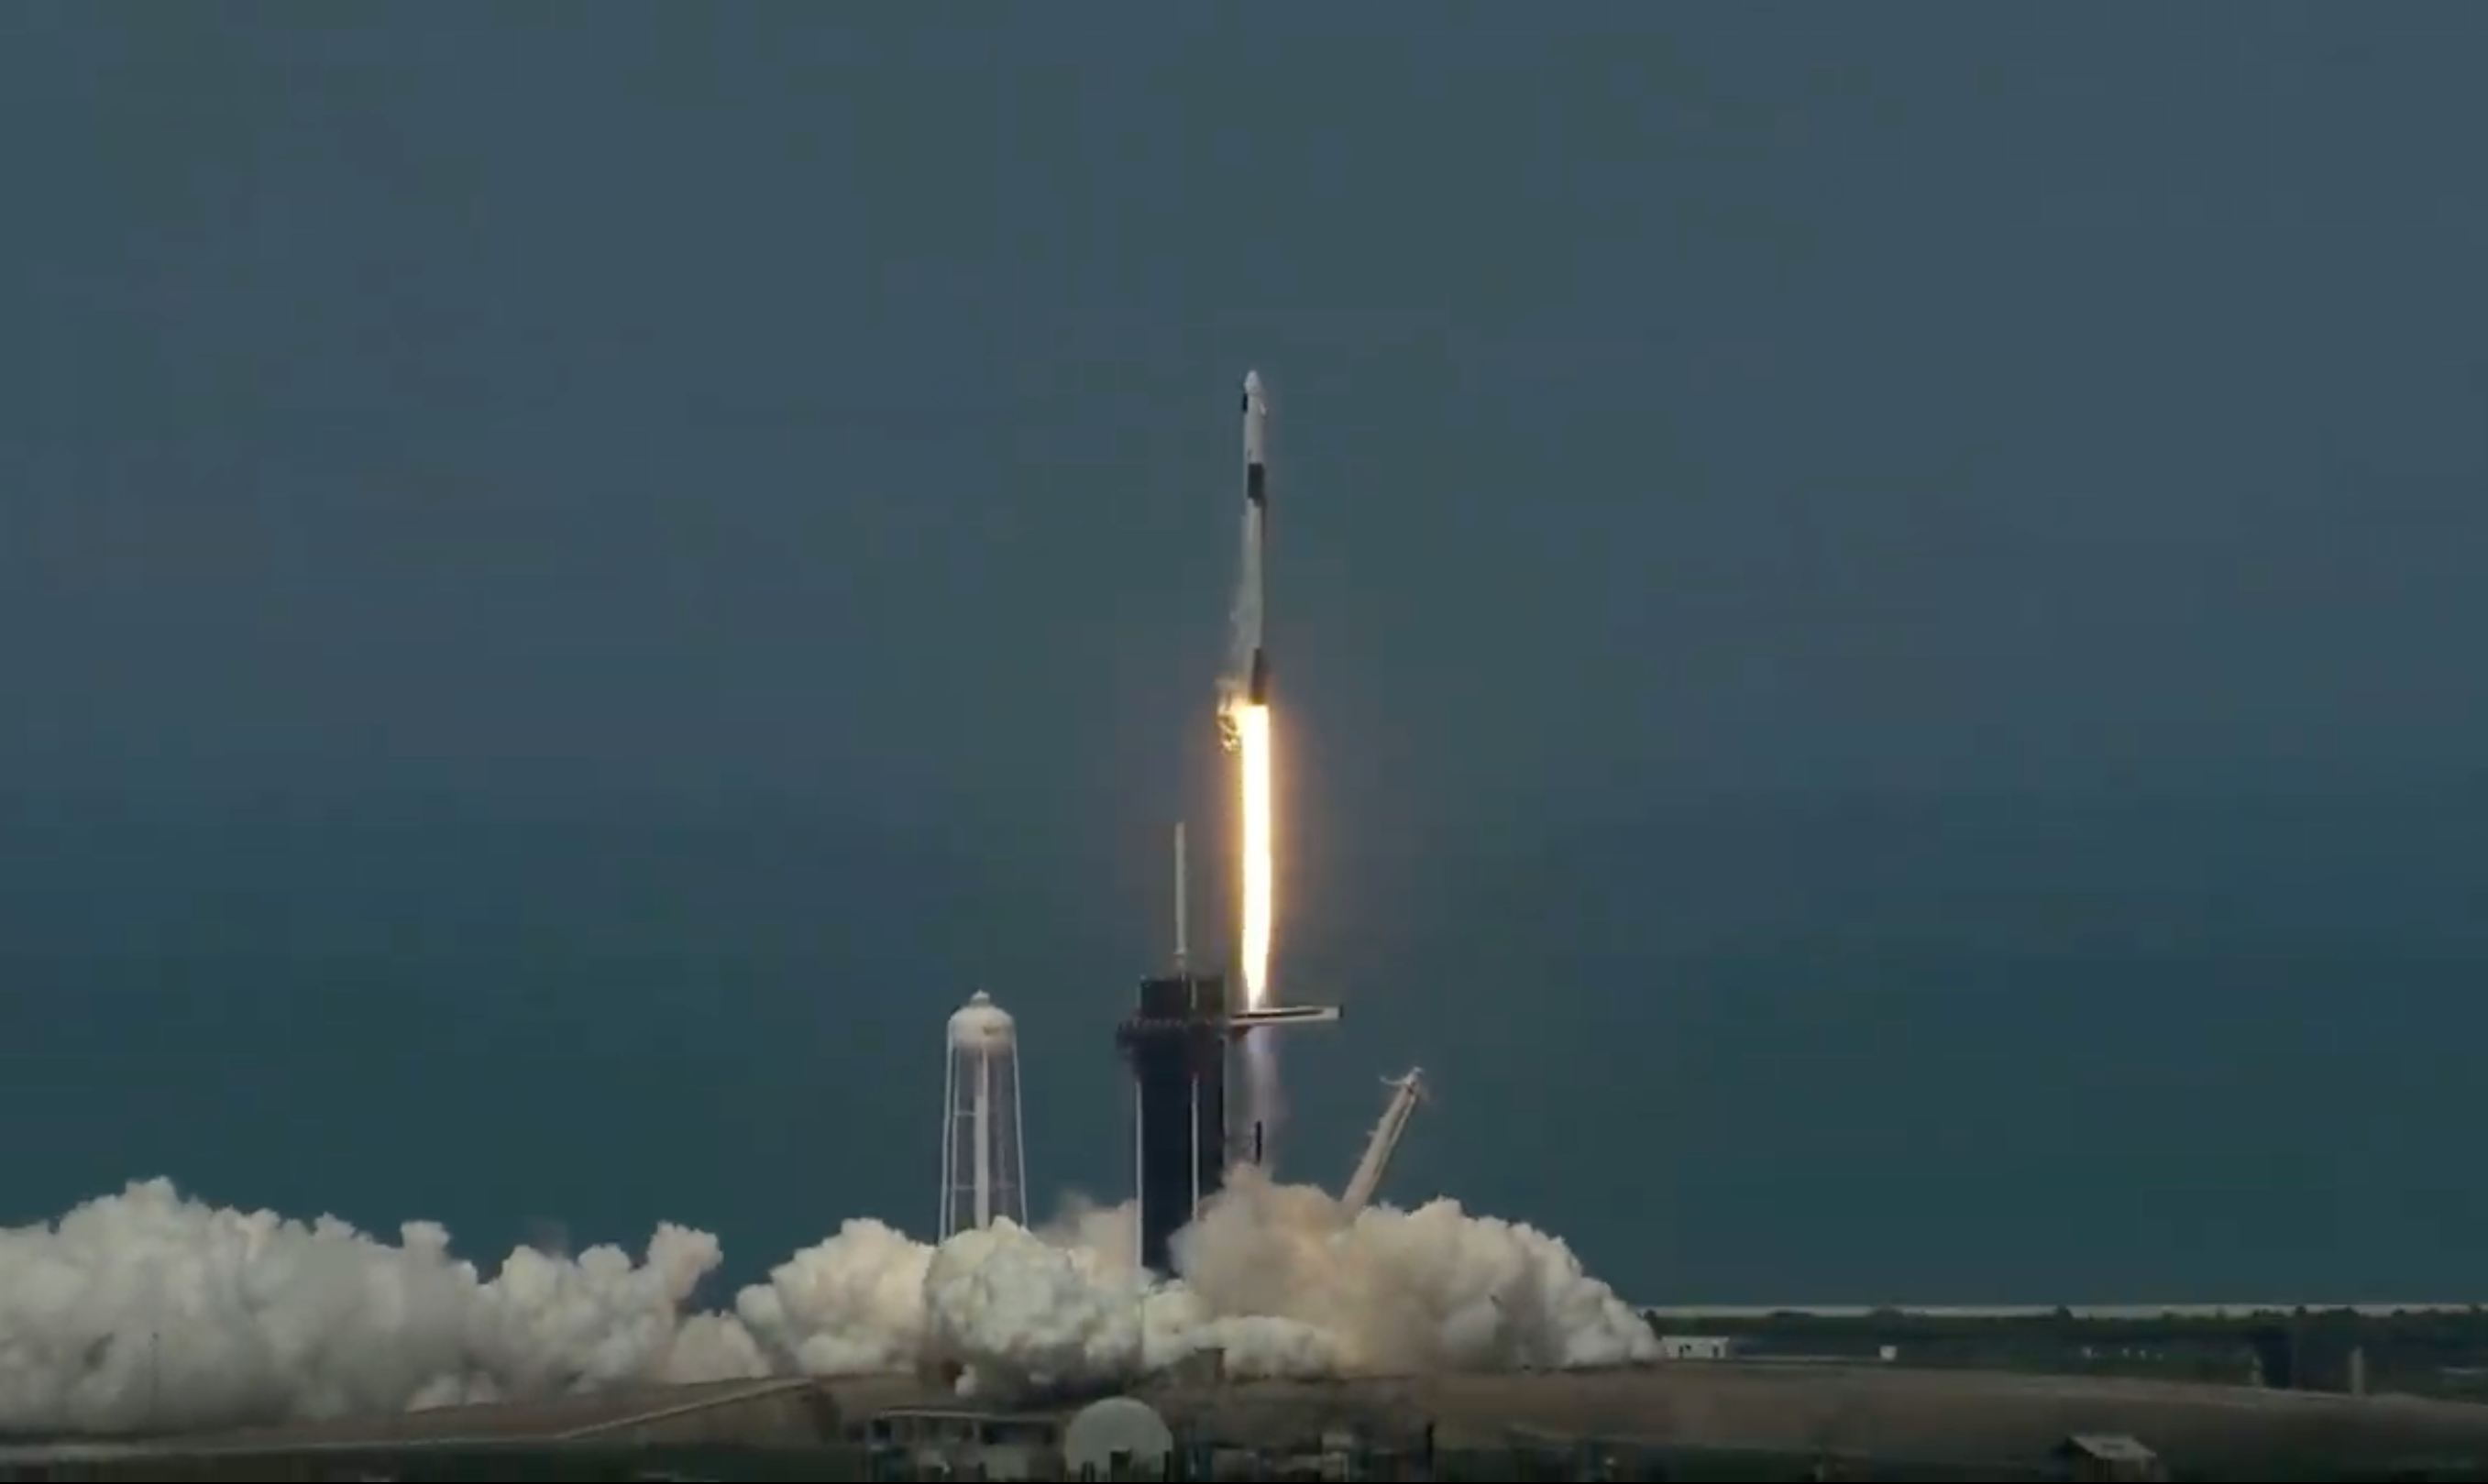 The SpaceX Crew Dragon lifting off for Demo-2.